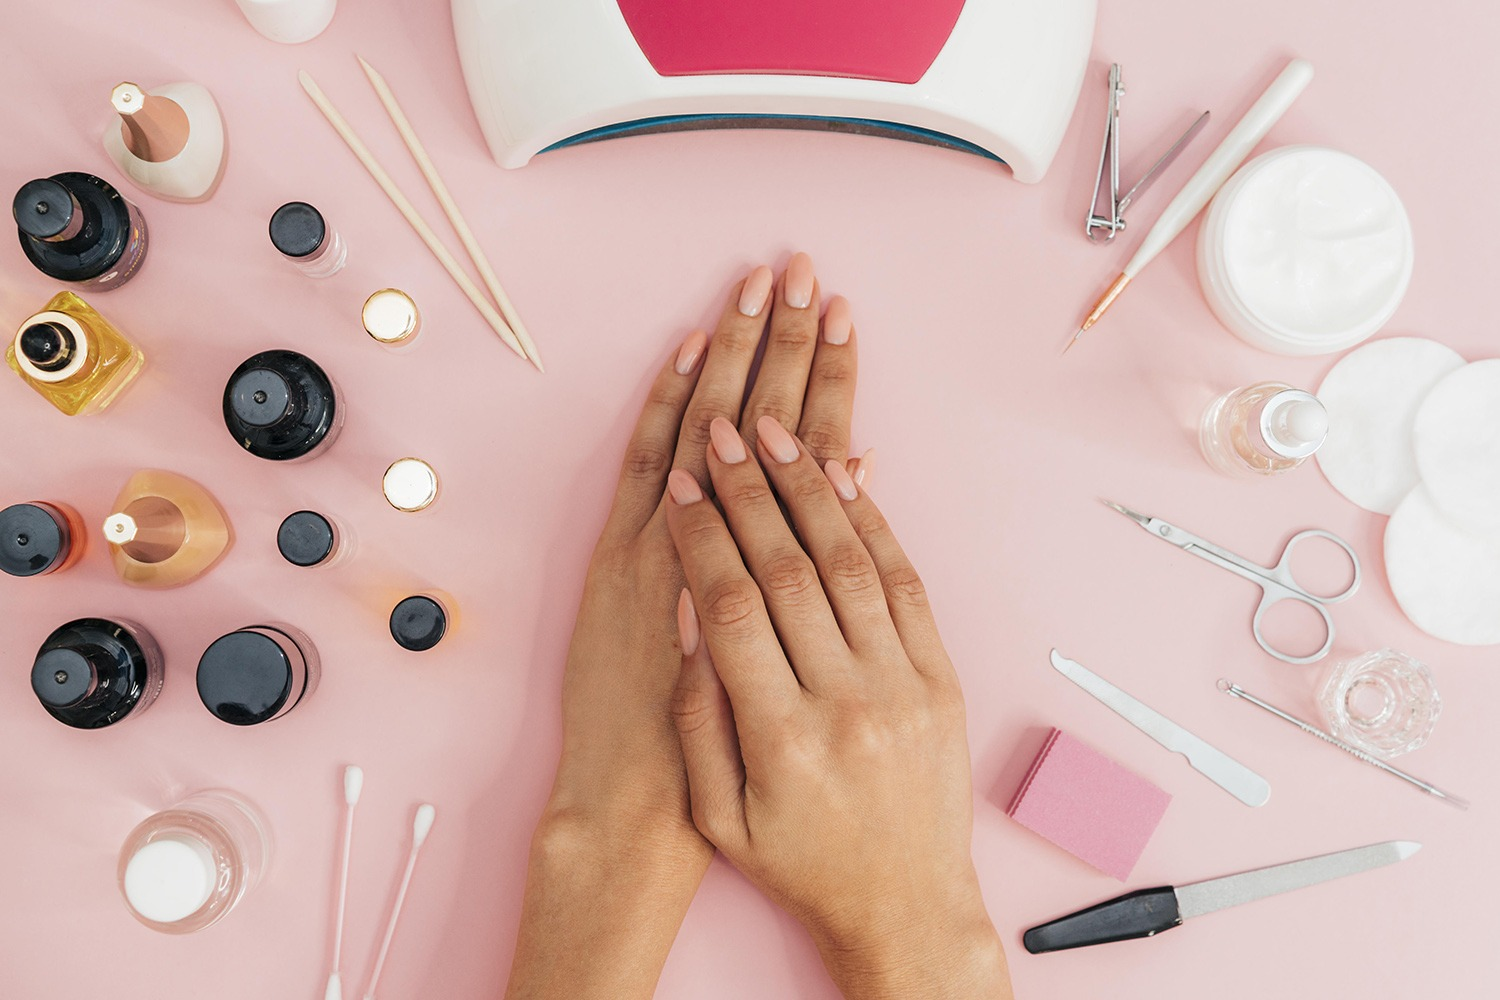 Close up of a woman's hands on a pink desk, surrounded by nail equipment and products. For use on Level 3 Nail Technology Course Page.